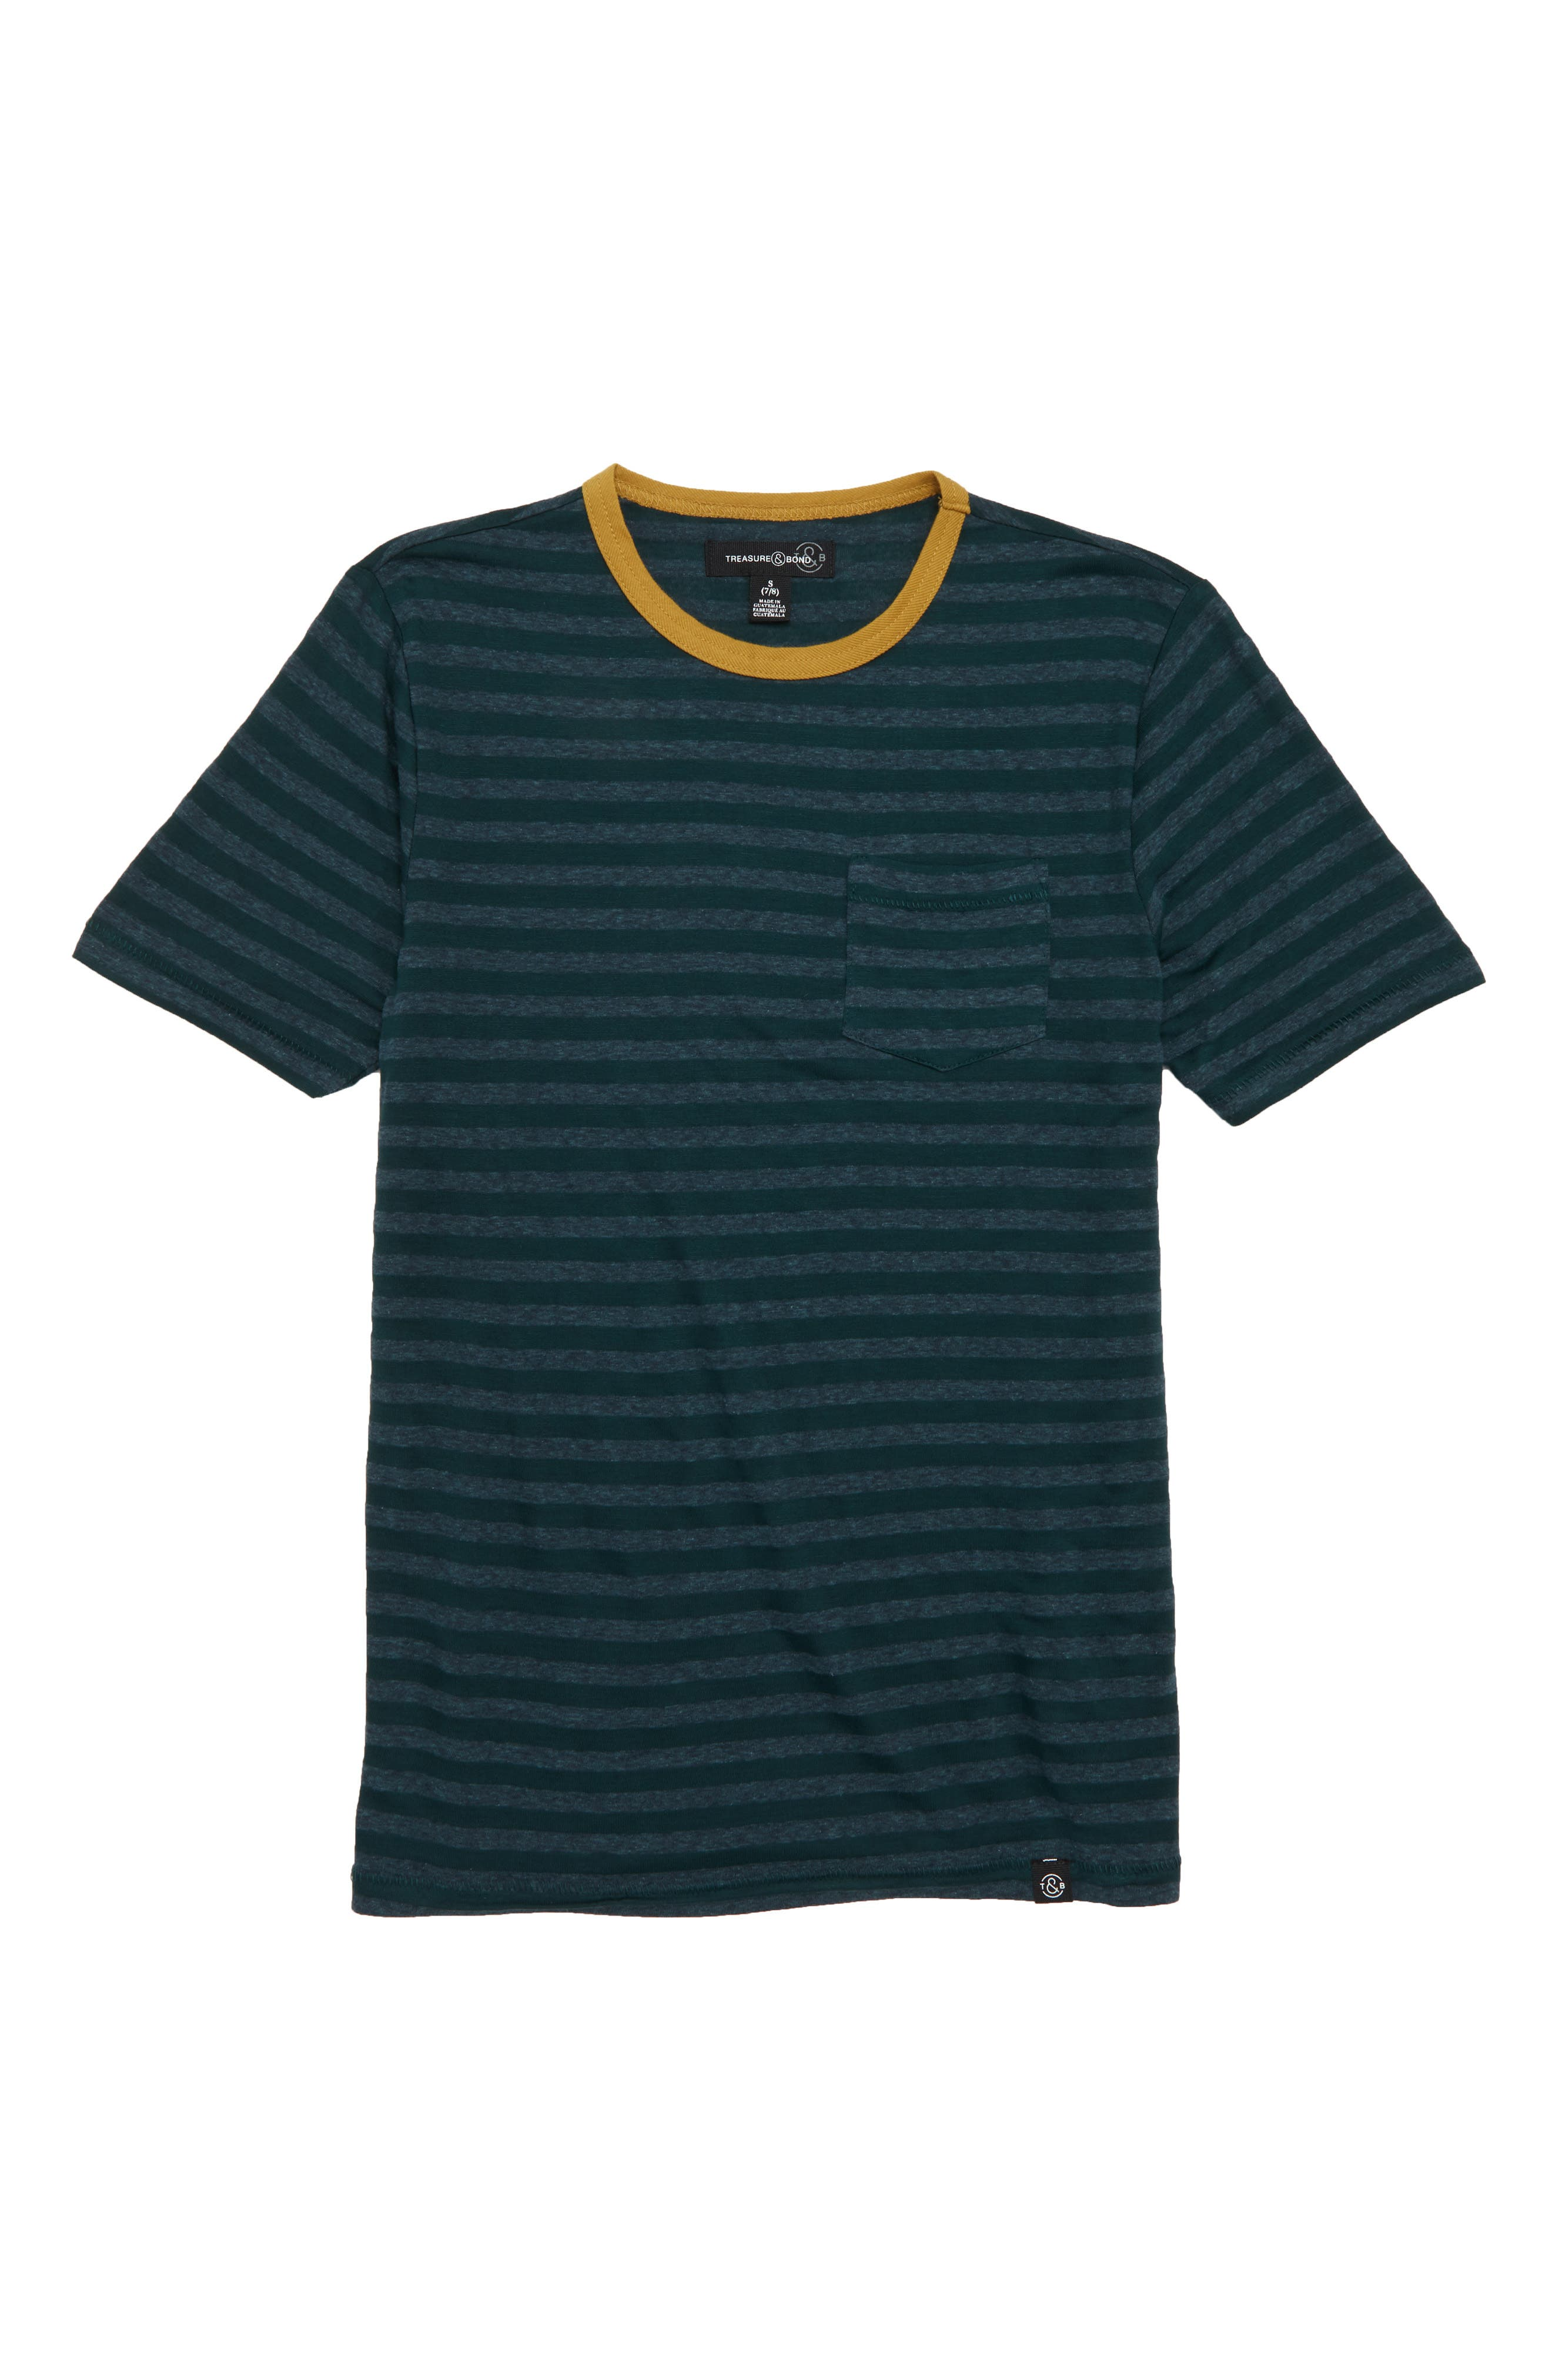 Stripe Pocket T-Shirt,                             Main thumbnail 1, color,                             301